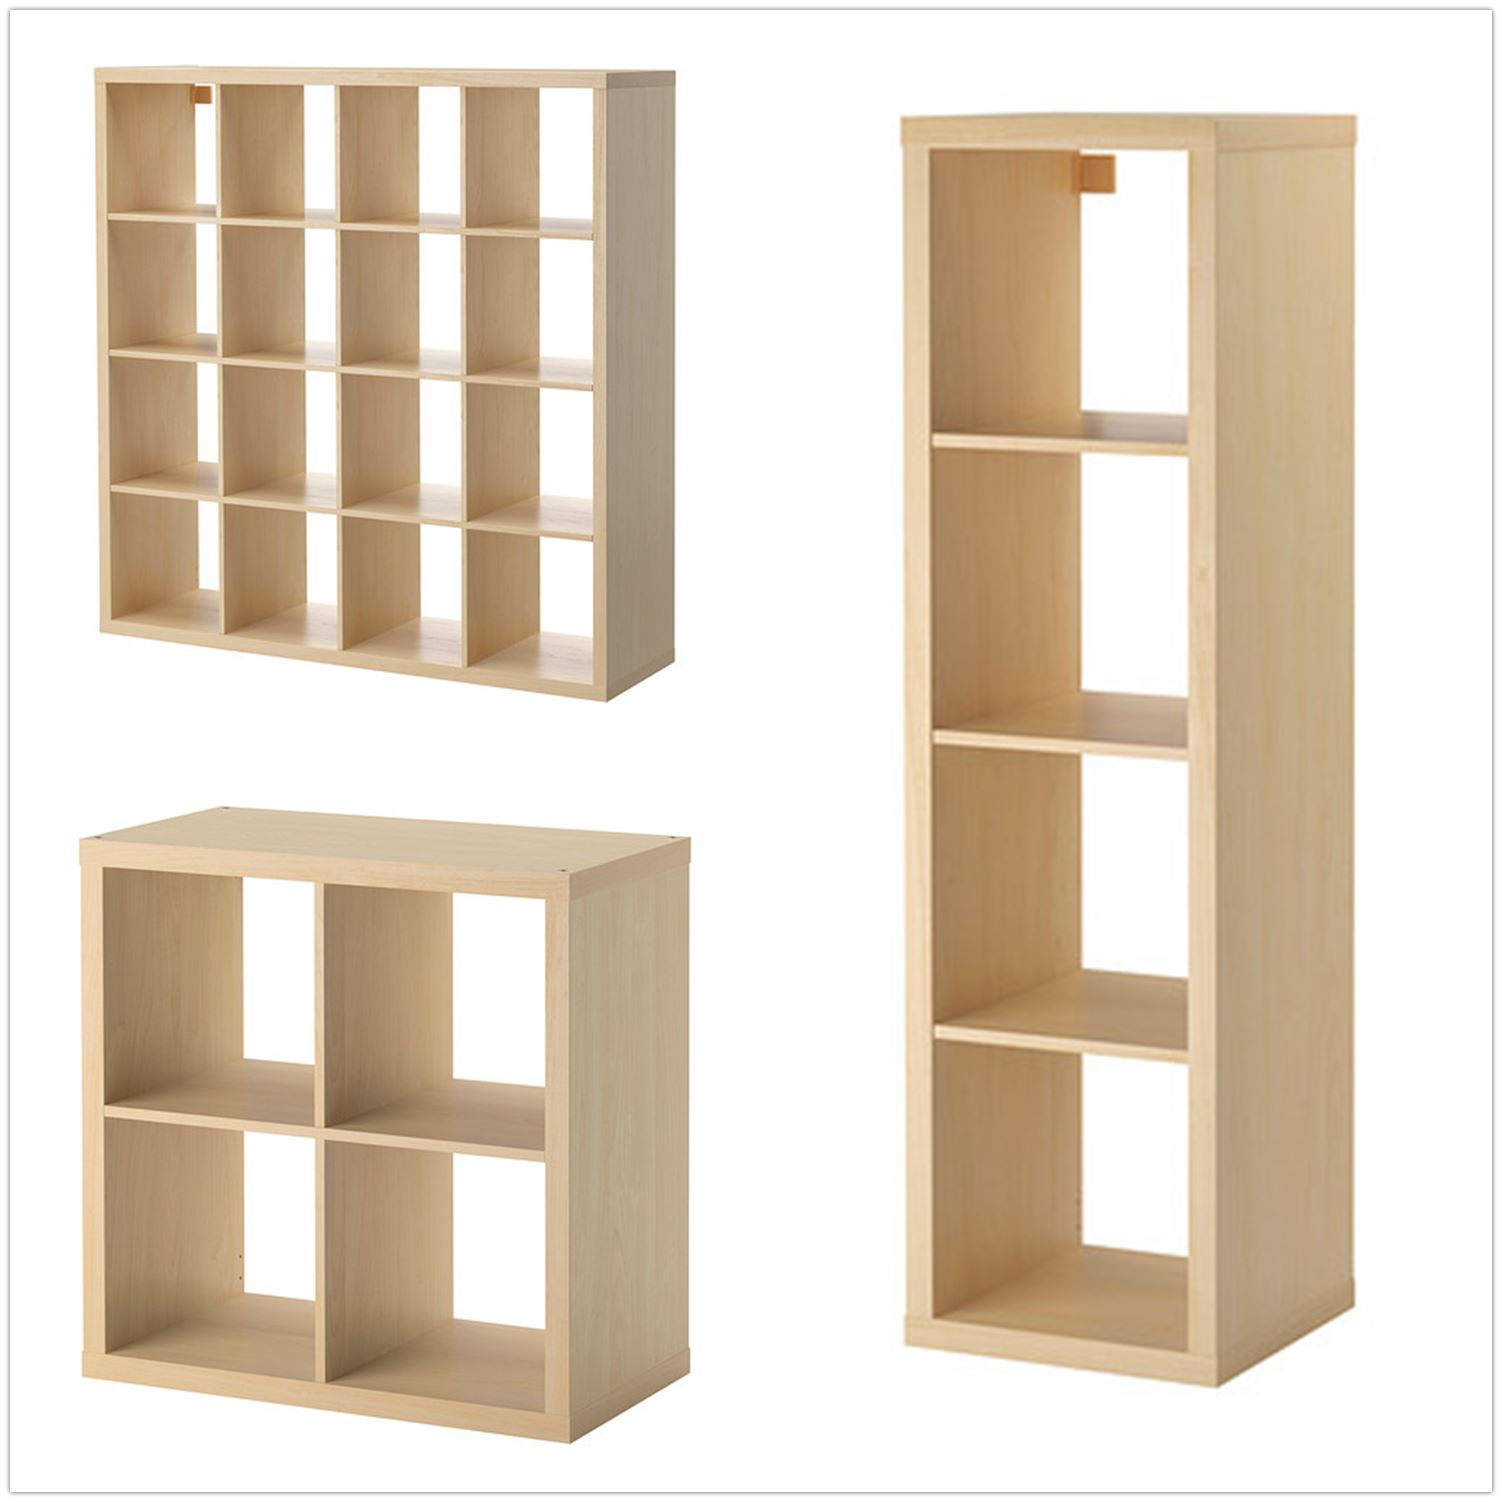 ikea kallax cube storage series shelf shelving units. Black Bedroom Furniture Sets. Home Design Ideas